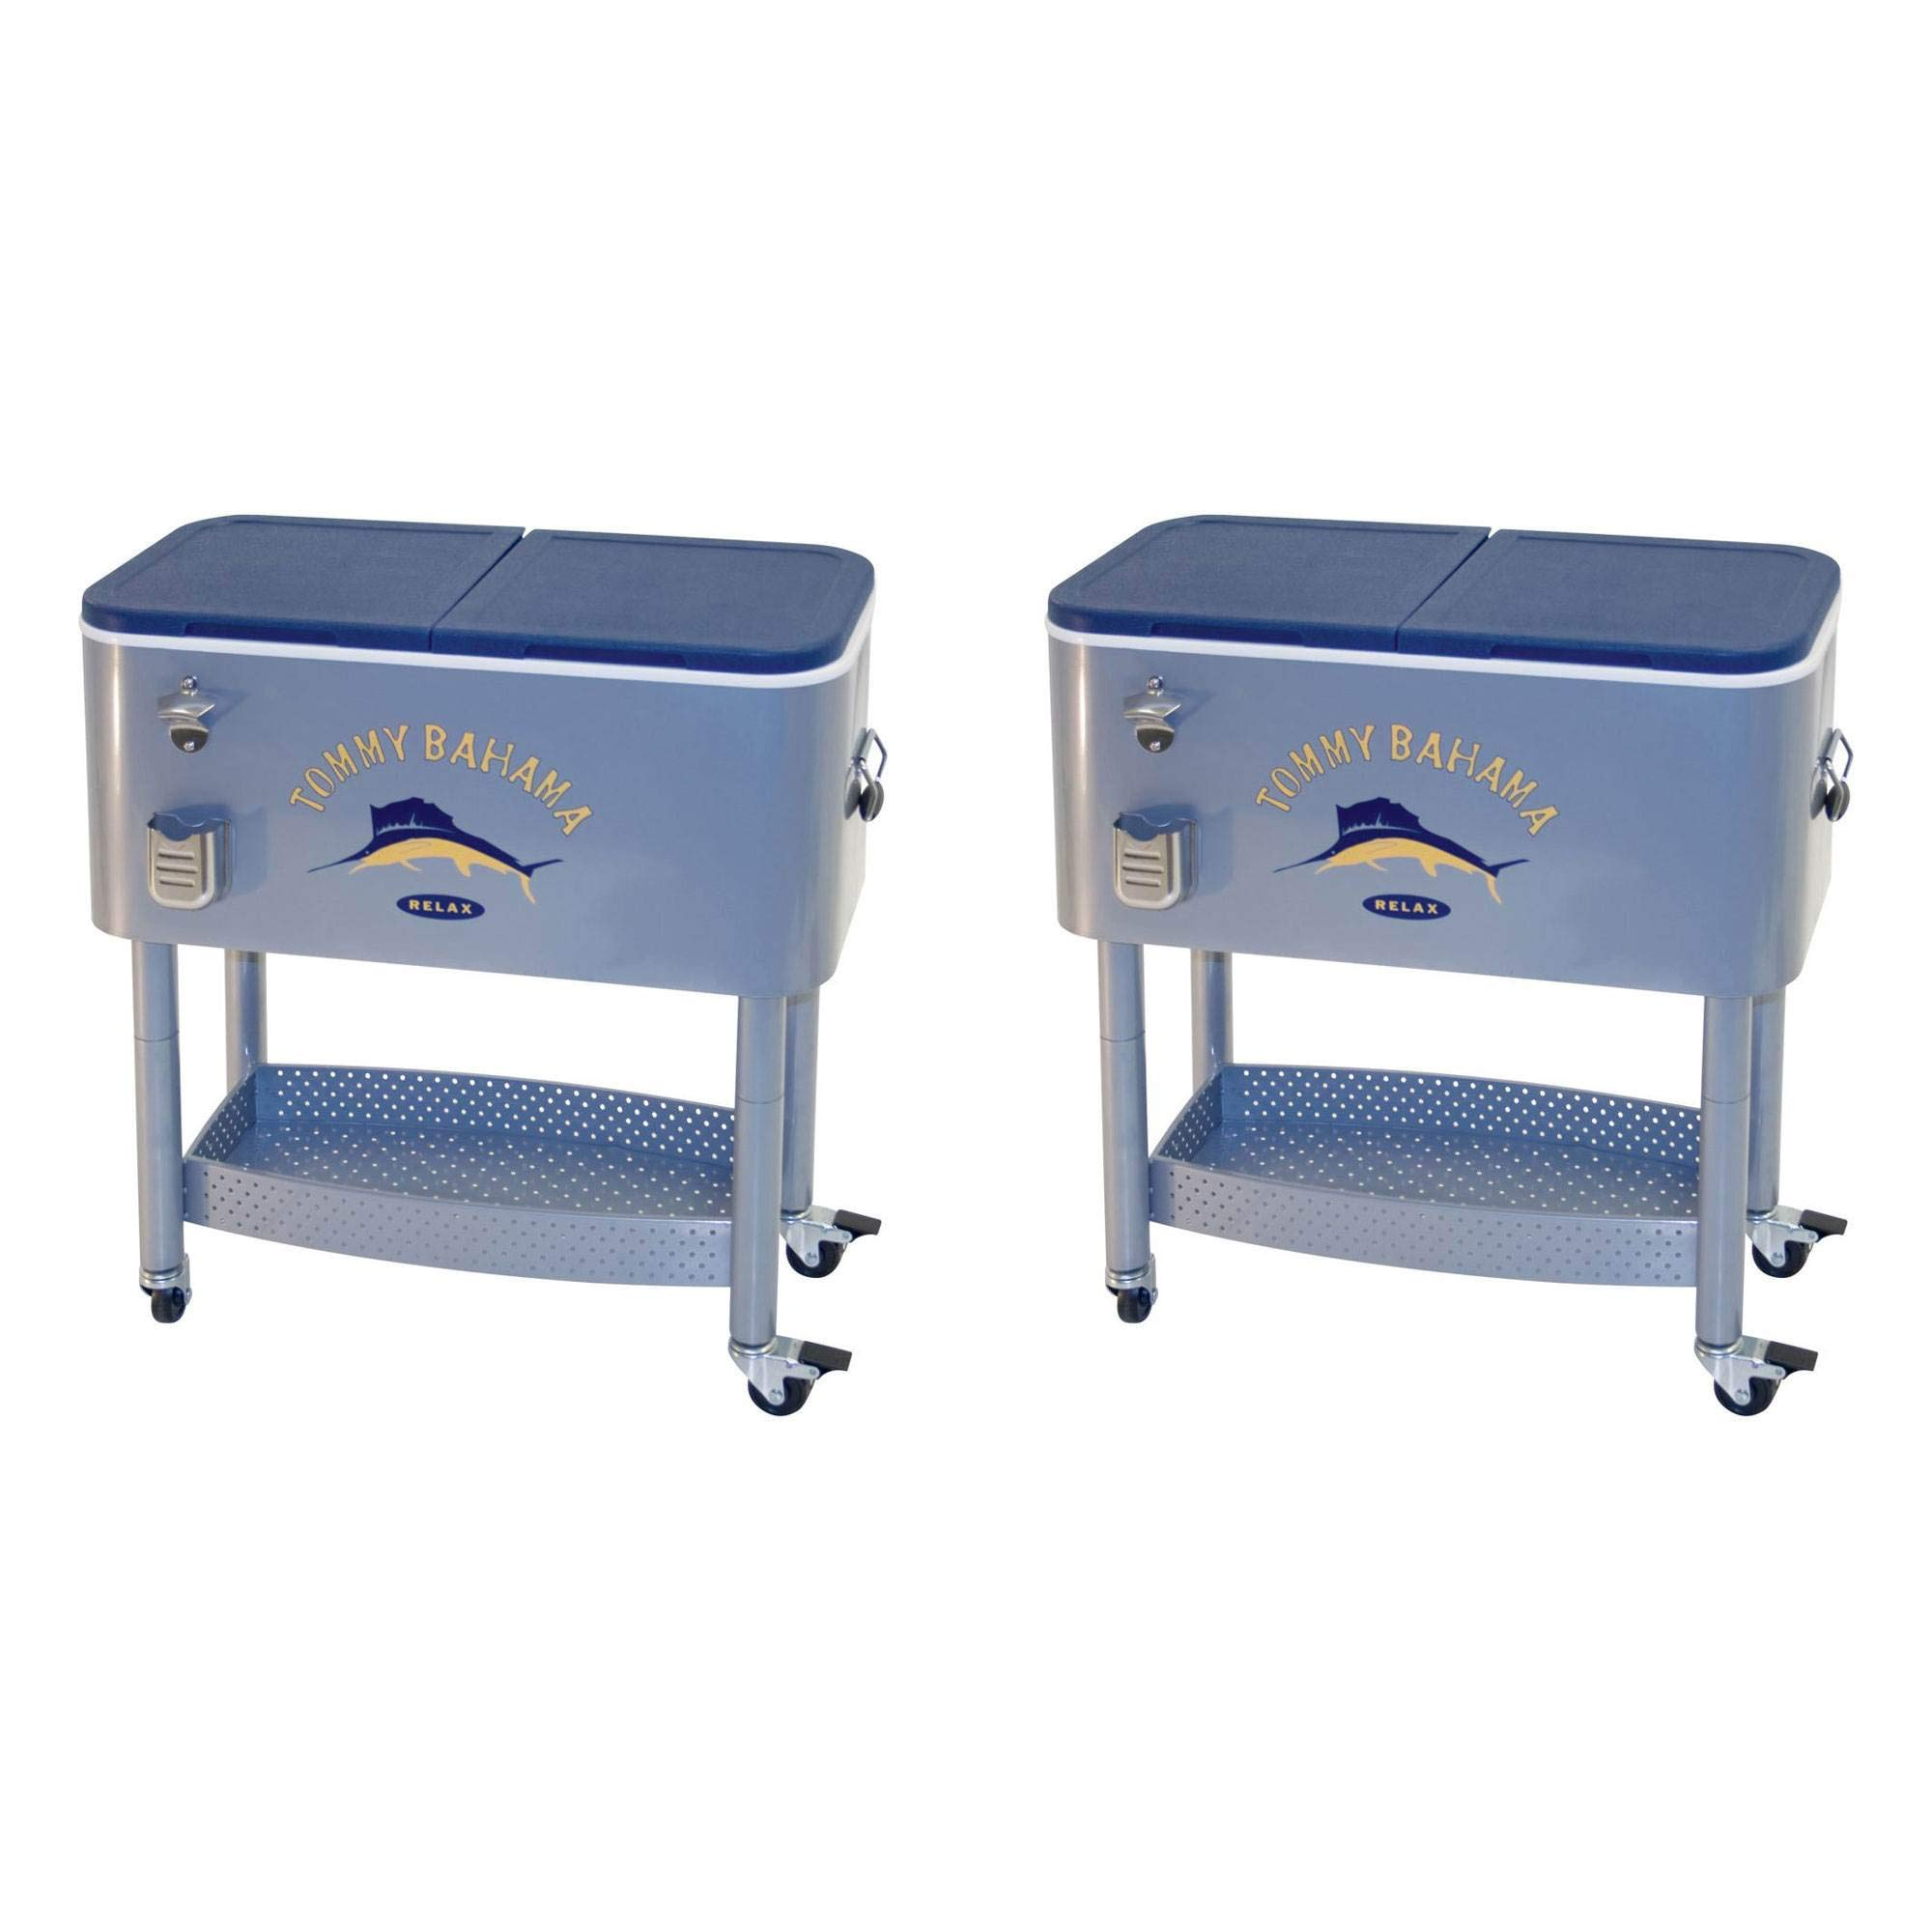 Tommy Bahama The Entertainer 77 Qt Rolling Portable Patio Party Cooler (2 Pack) by Tommy Bahama